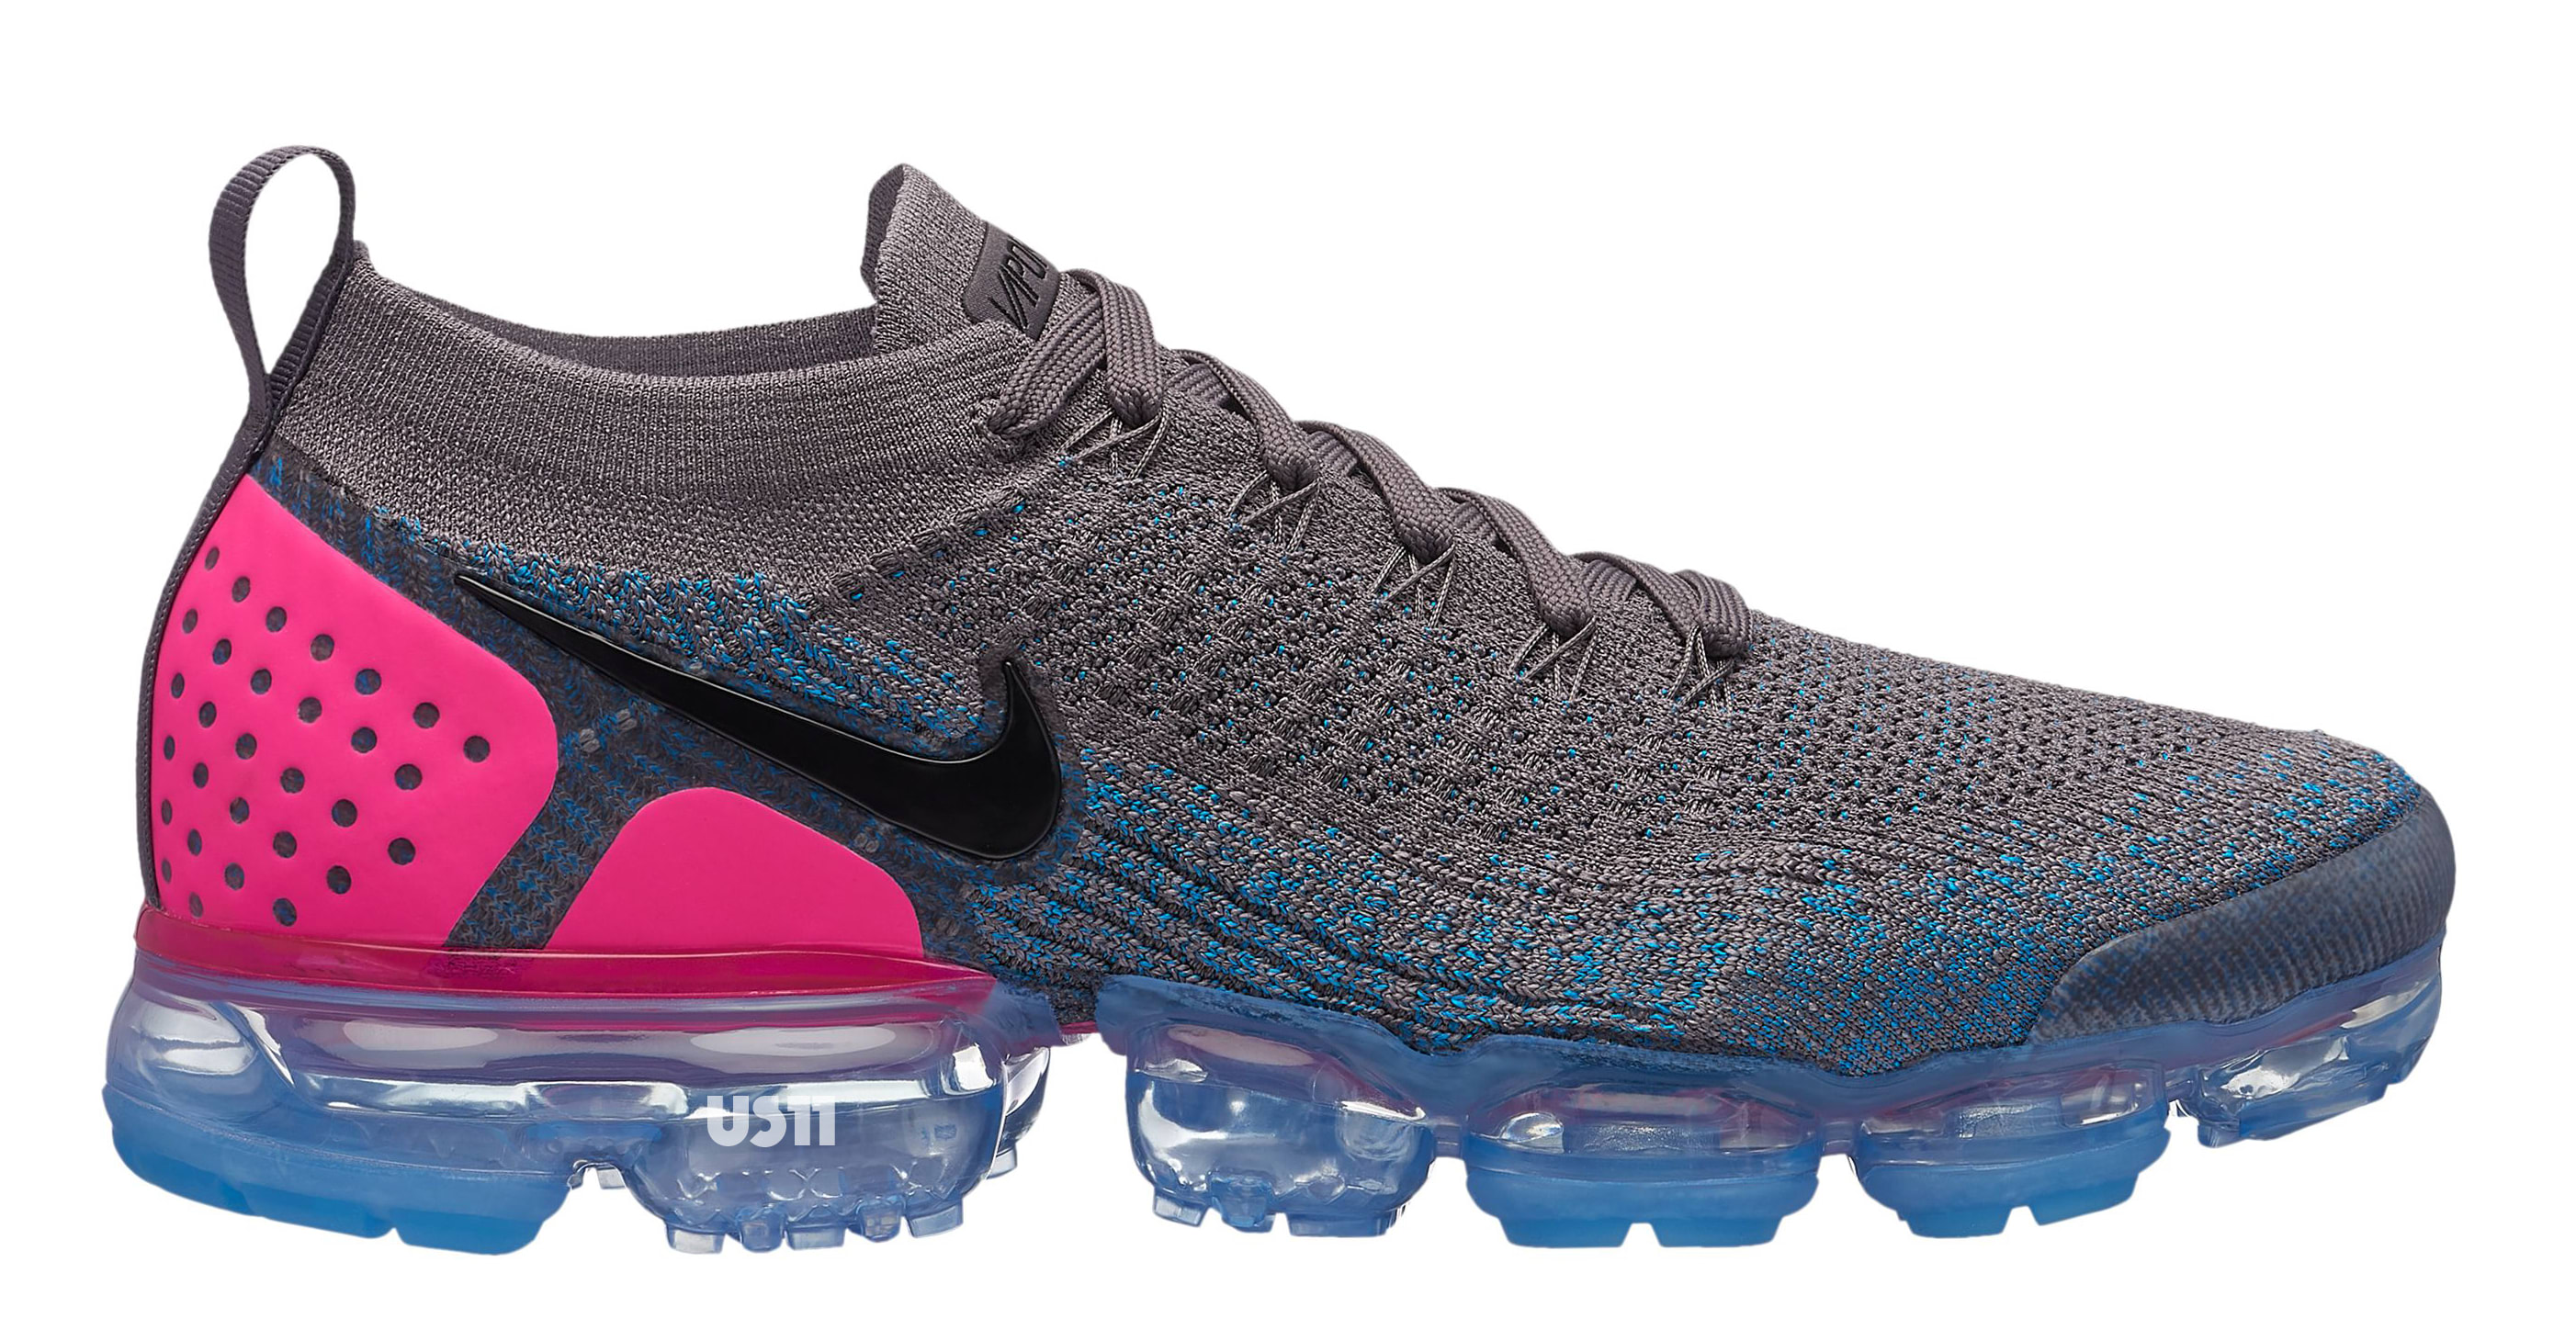 802af6fb216e4 Nike Air VaporMax 2 New Colorways for 2018 - Hunnid Grind